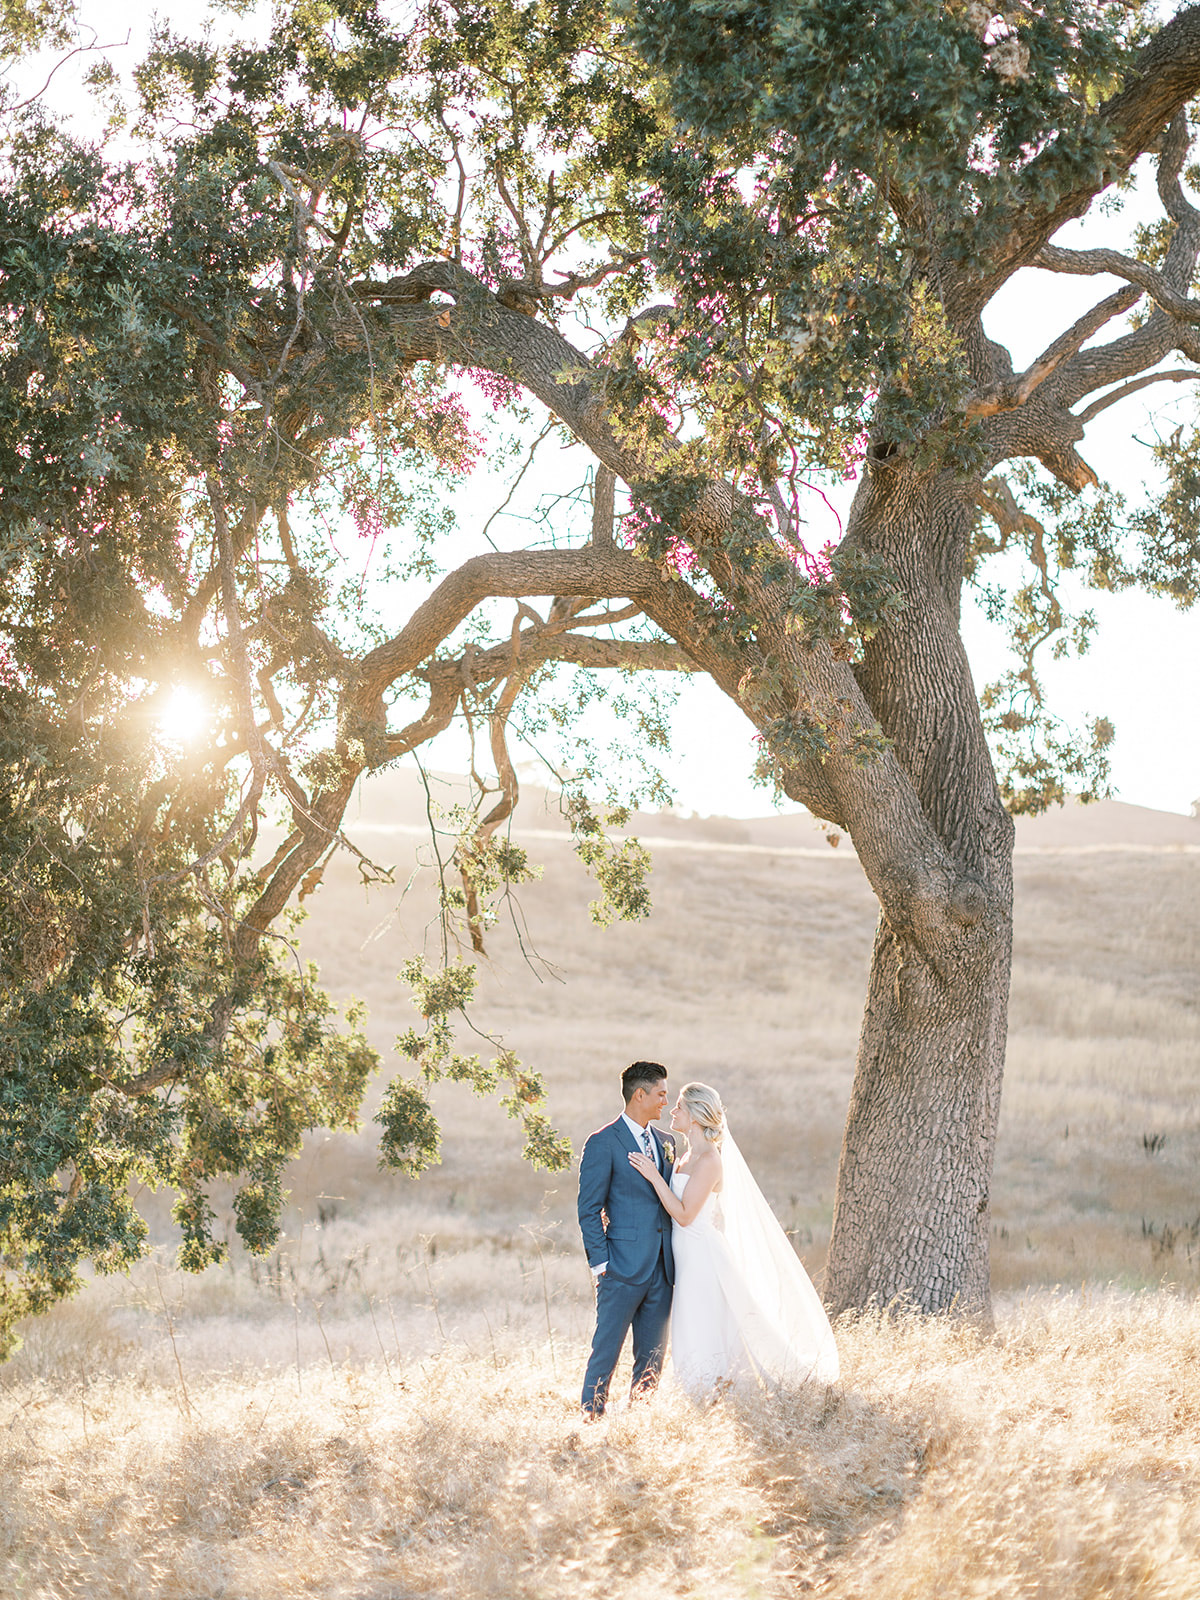 bride and groom smiling at each other outside under large tree